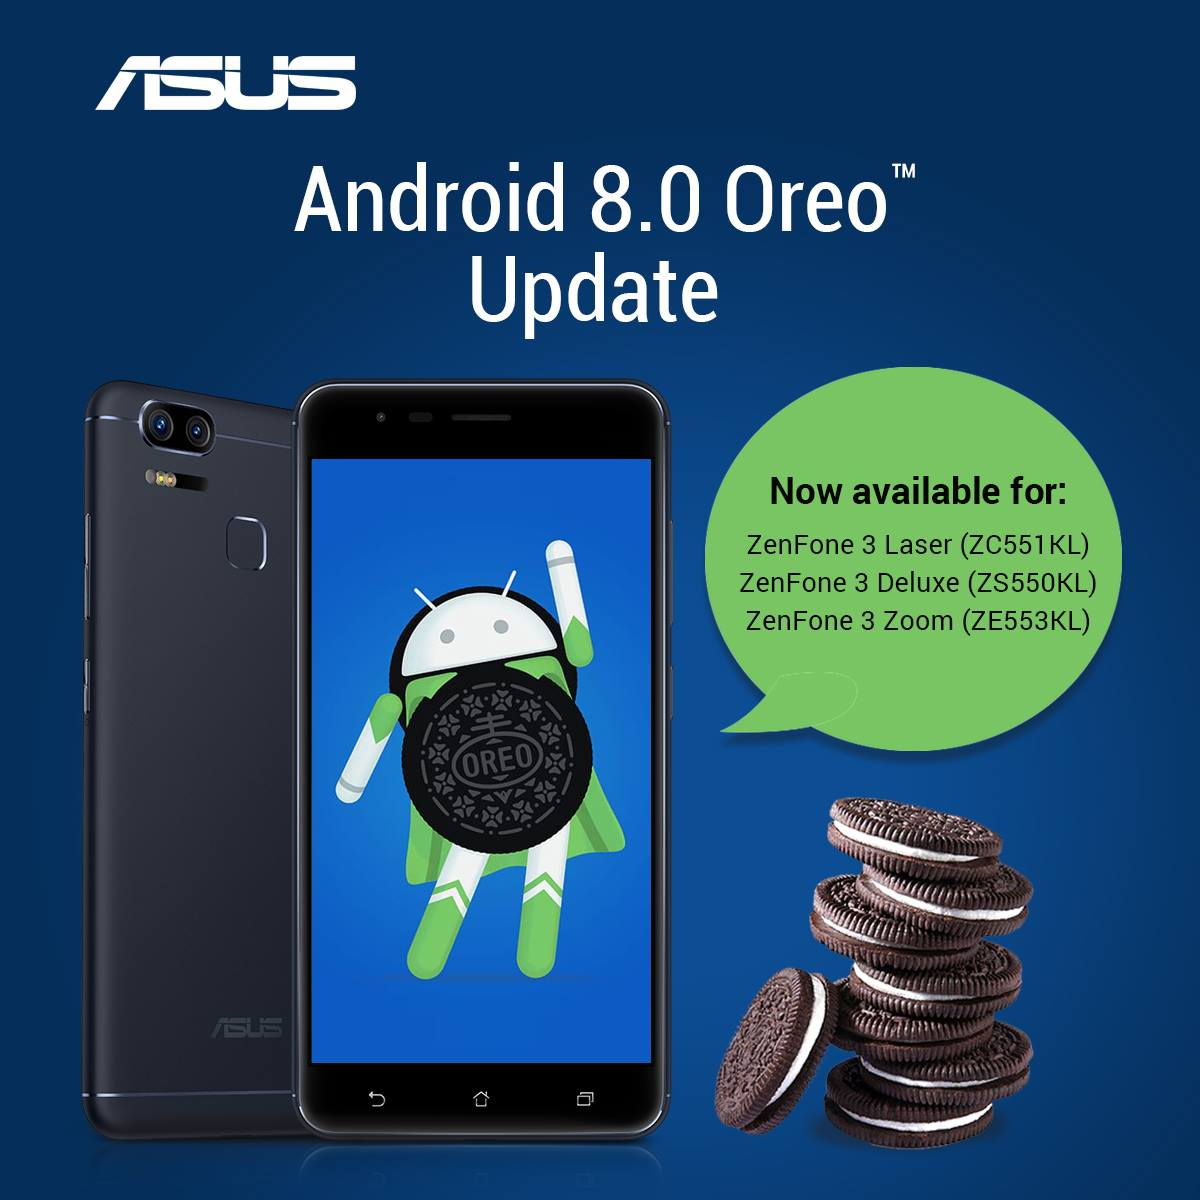 Android Oreo 8 0 update now available for more ZenFone models